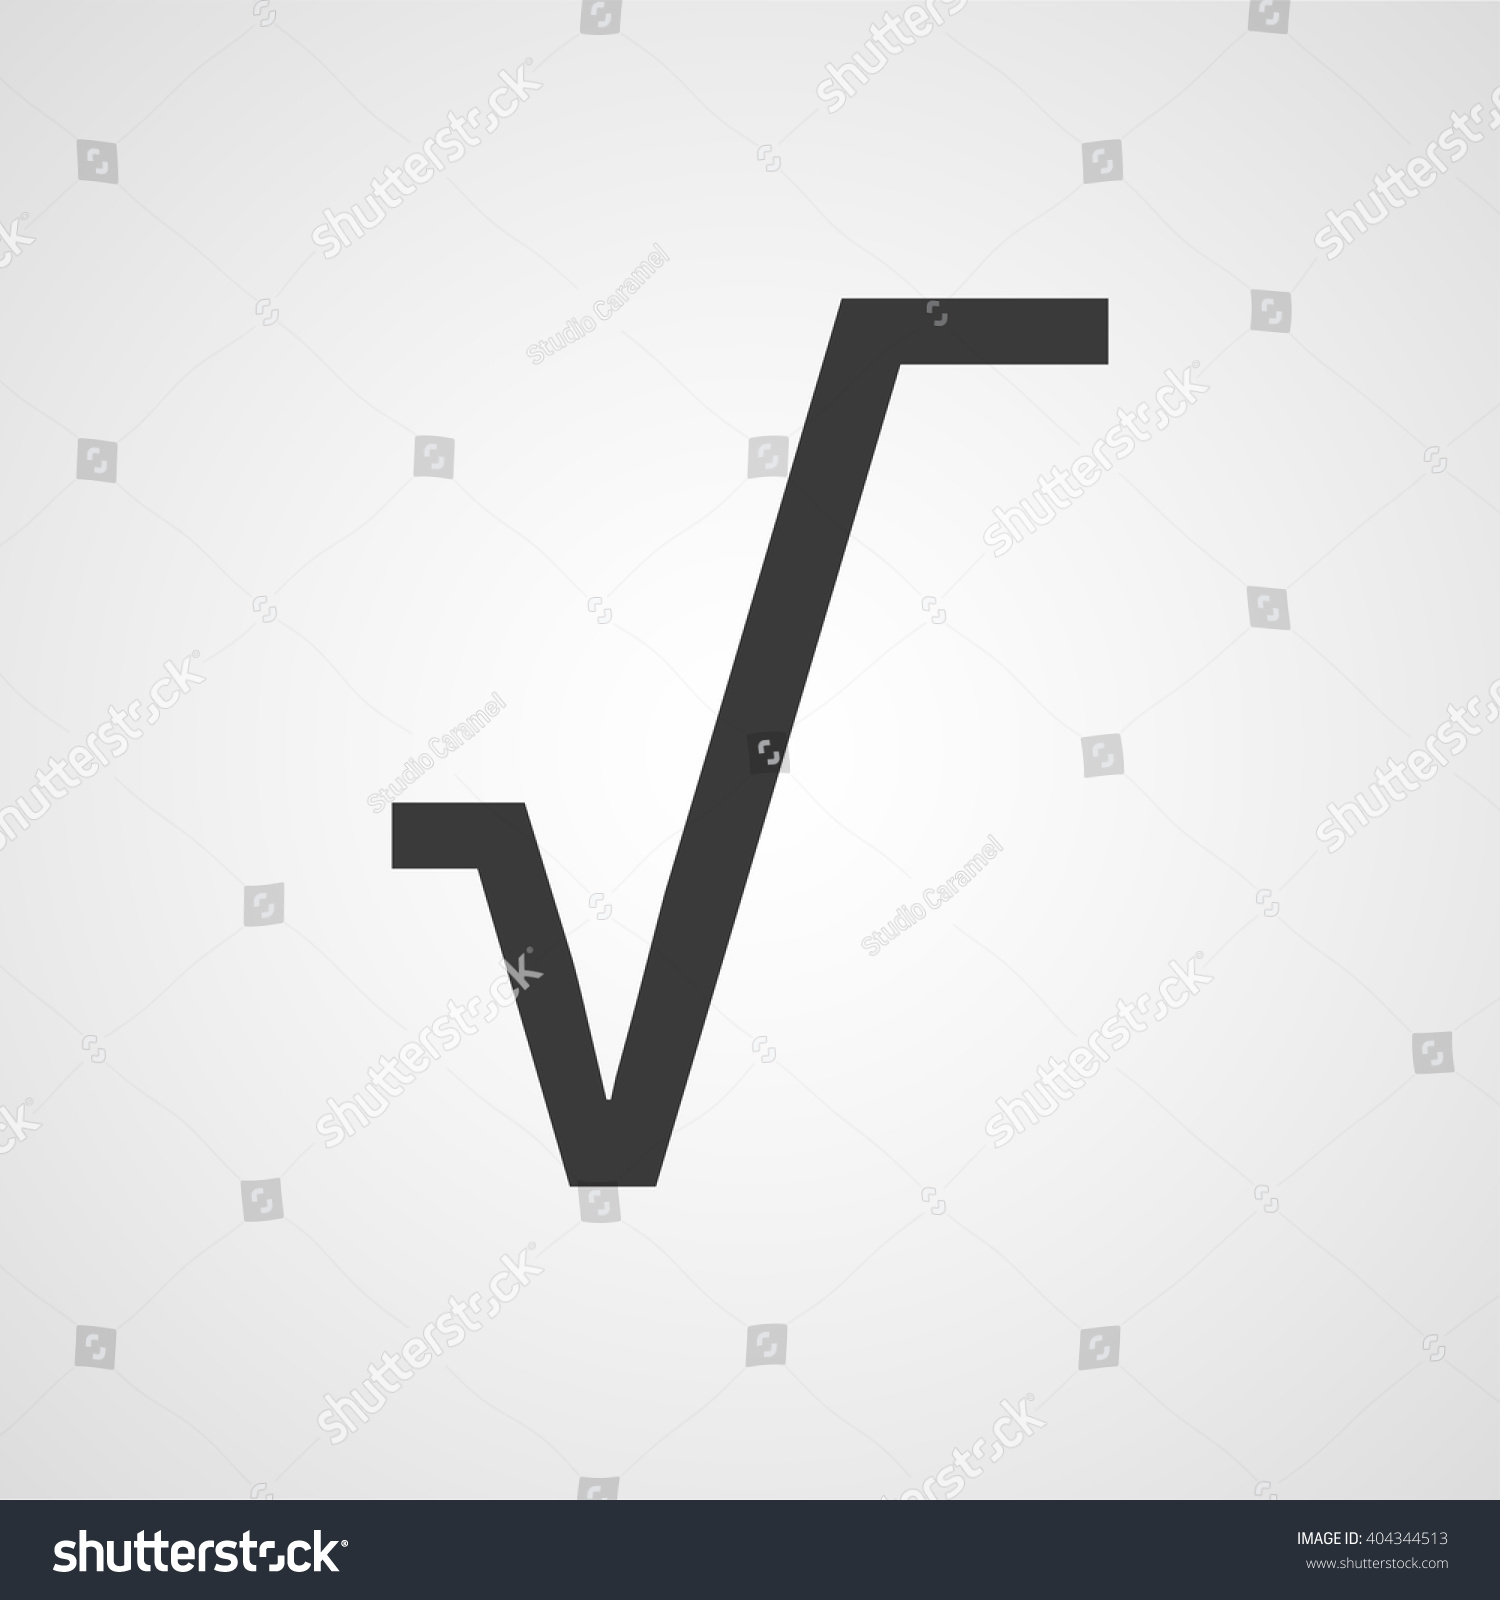 Square root symbol vector icon stock vector 404344513 shutterstock square root symbol vector icon buycottarizona Images